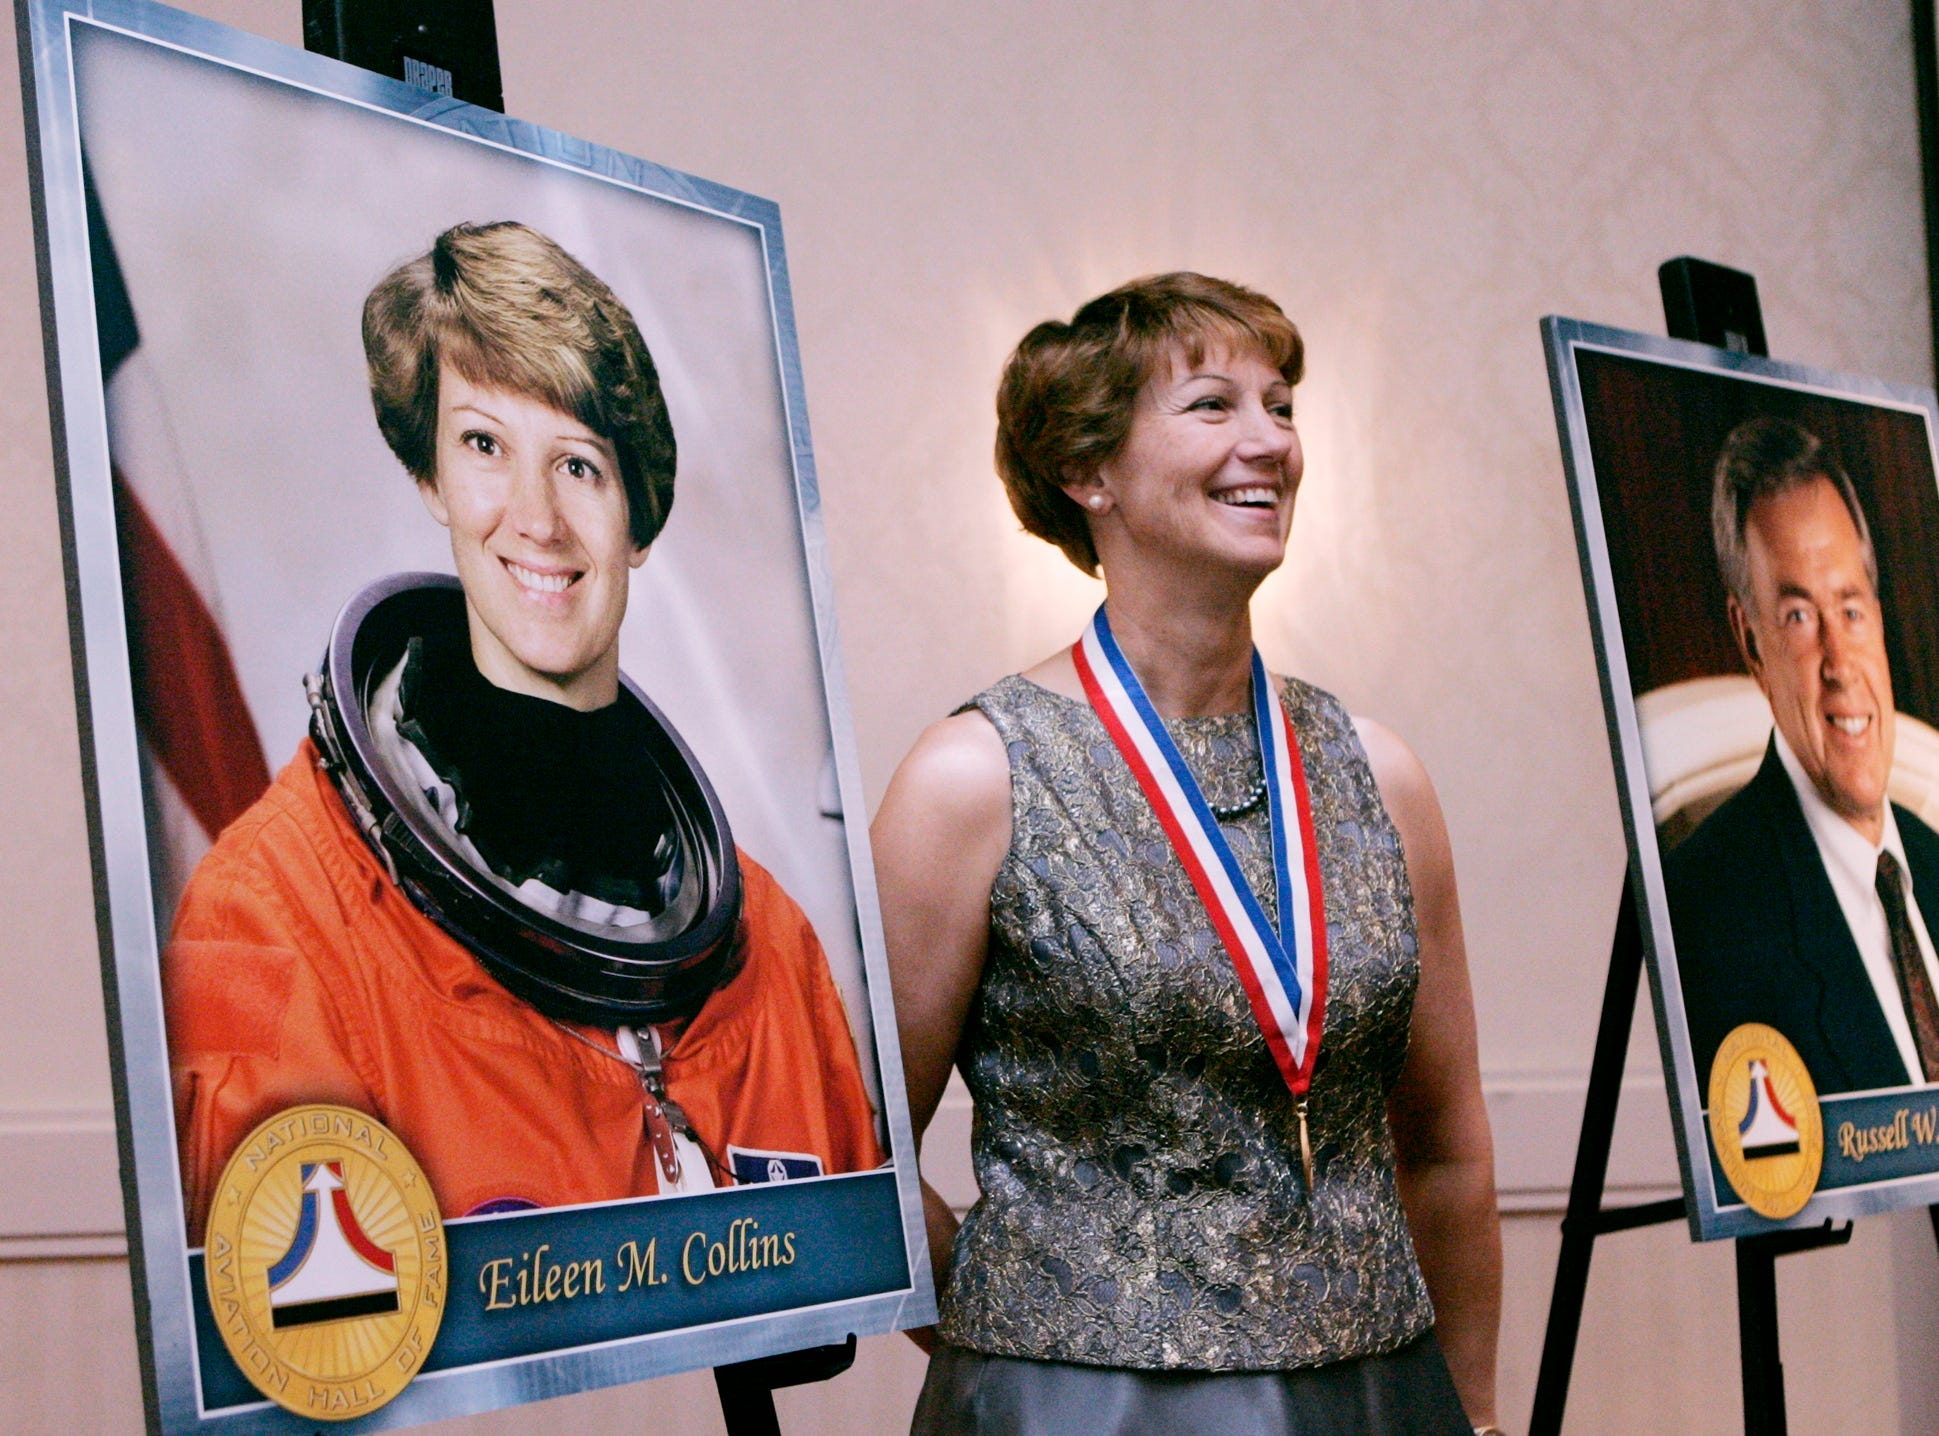 Eileen Collins stands next to a portrait of herself as she has her picture taken Saturday July 18, 2009 at the National Aviation Hall of Fame photo reception. The event was held for aviation figures who are to be enshrined in the organization's hall of fame. Collins, born in Elmira, N.Y., was the Air Force's first female flight instructor and was chosen to be an astronaut in 1991. In 1995, she became the first woman to pilot a space shuttle, and she became the first to command an American space mission when she served on a shuttle in 1999. She flew four shuttle missions, logging 872 hours before retiring in 2006.